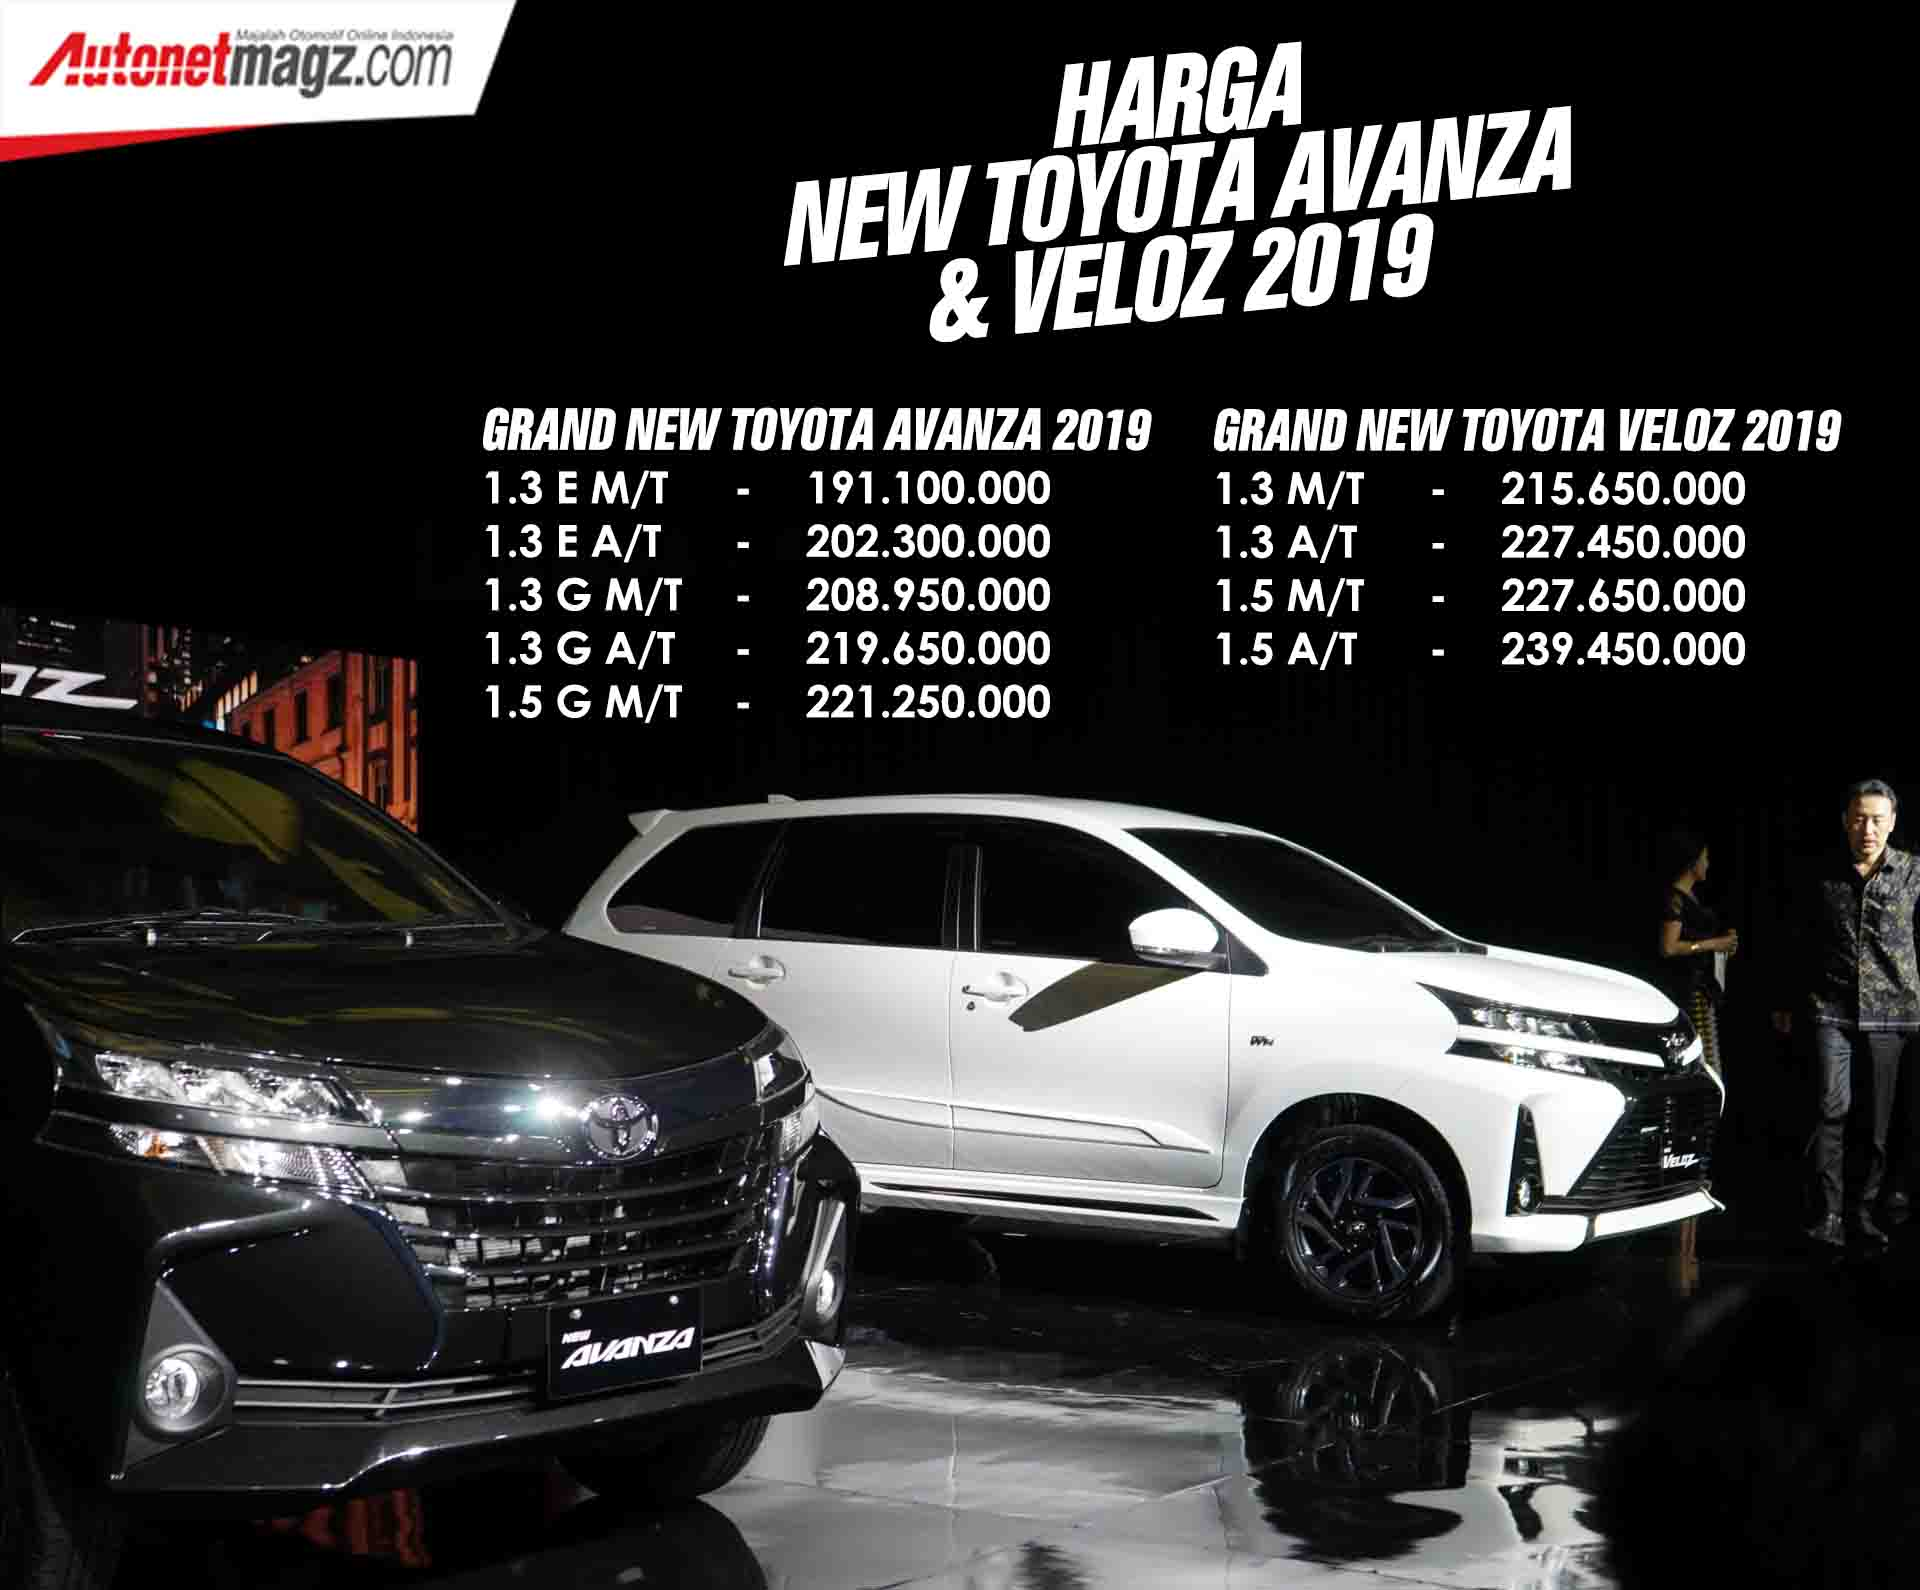 all new avanza veloz 2019 grand 2015 harga toyota autonetmagz review mobil berita